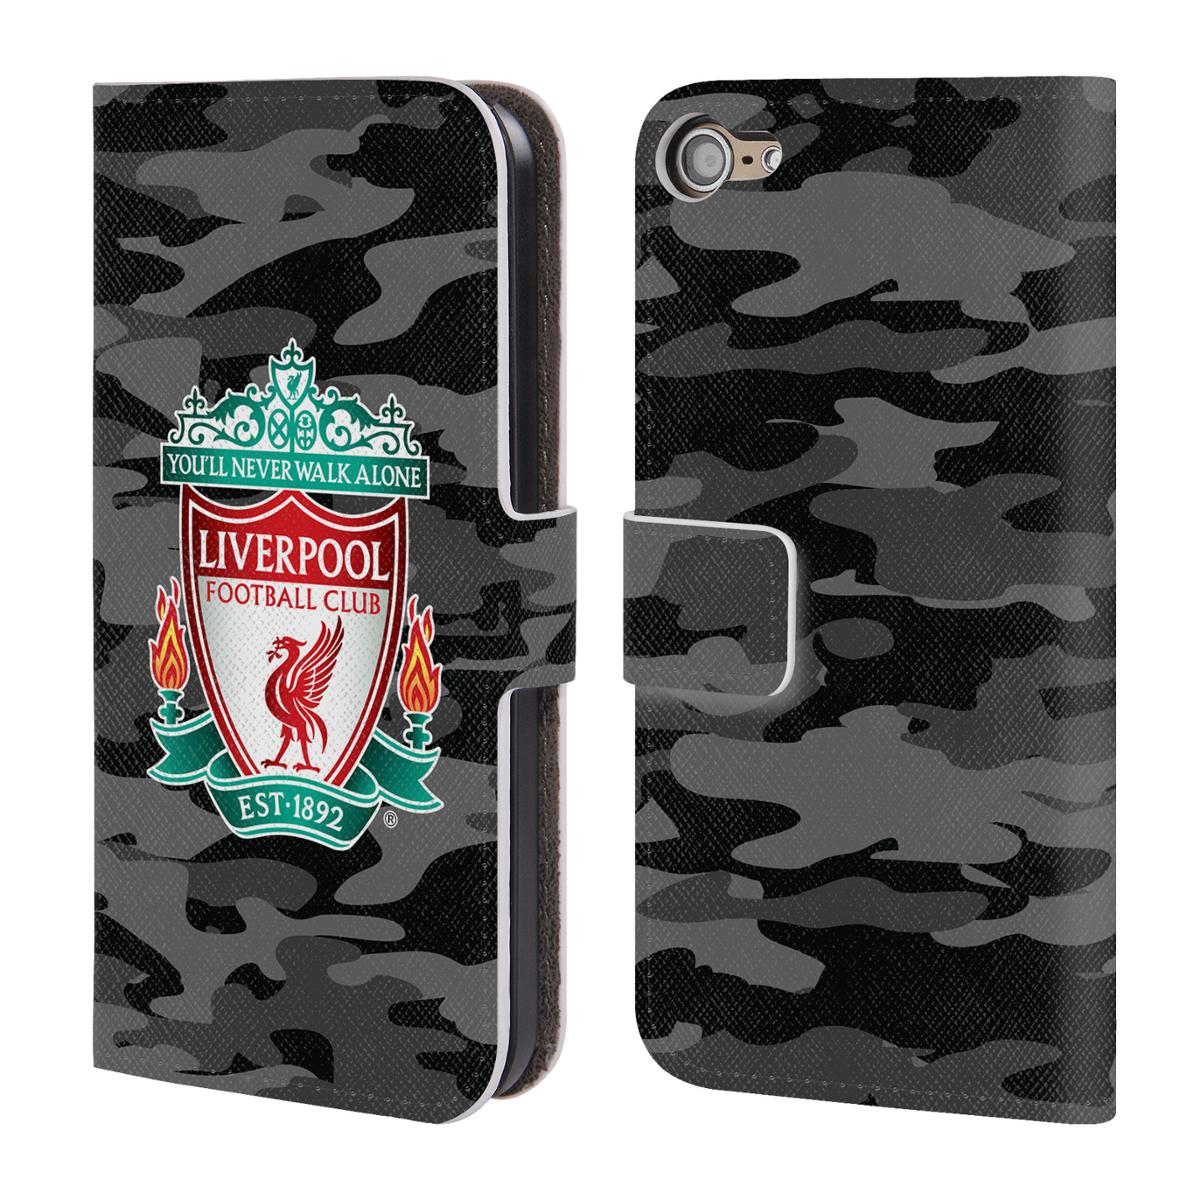 OFFICIAL LIVERPOOL FOOTBALL CLUB 2017//18 MARBLE CASE FOR APPLE iPOD TOUCH MP3